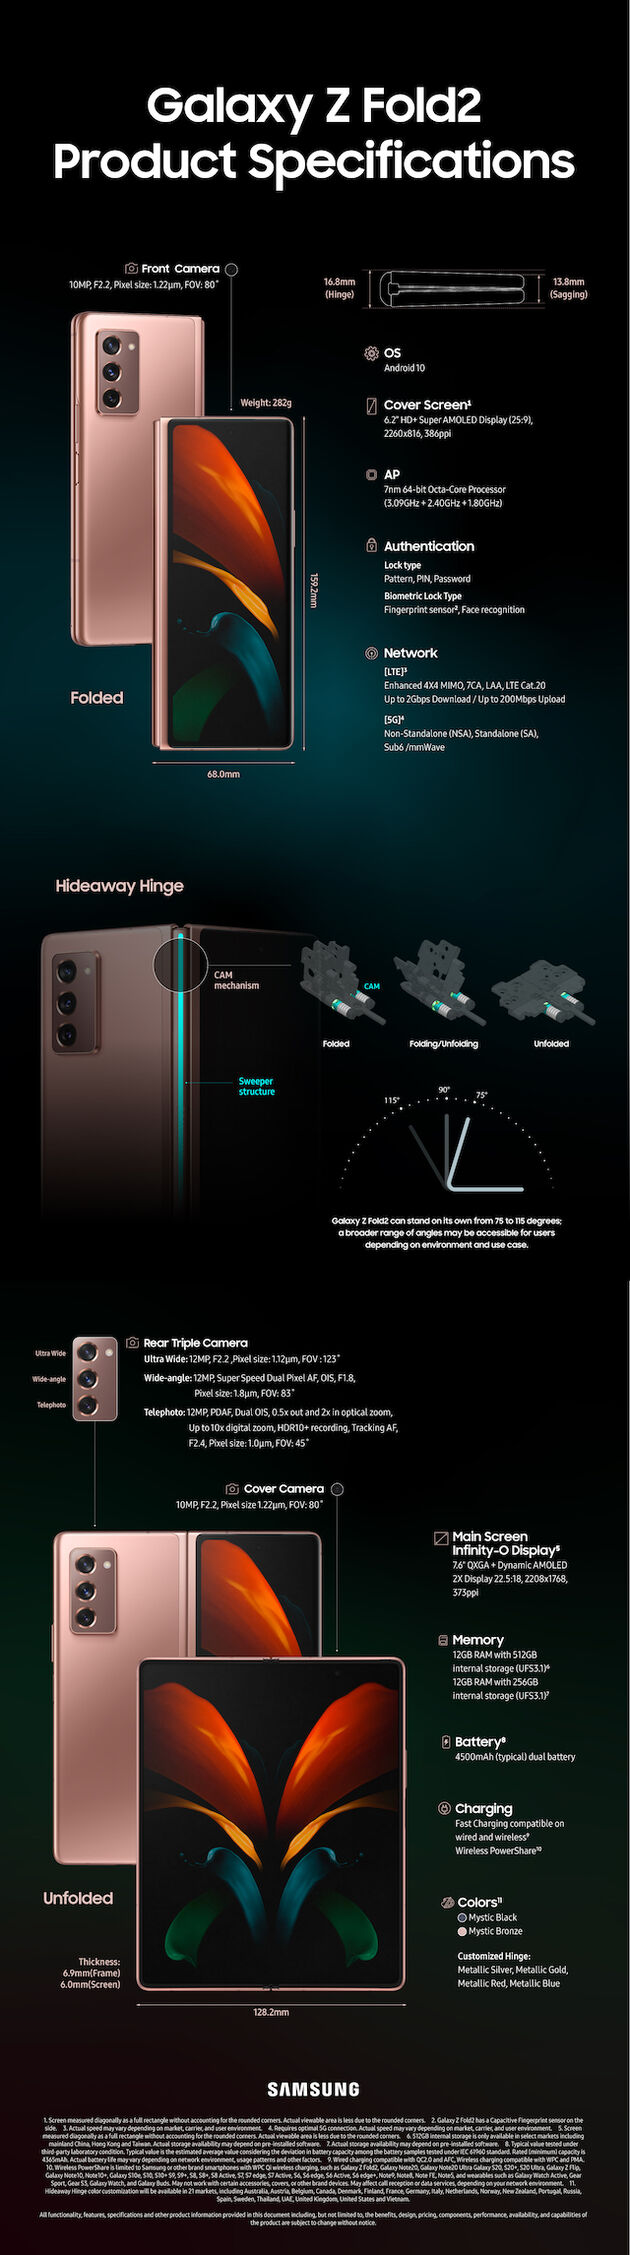 Galaxy_fold2_Product_Specifications